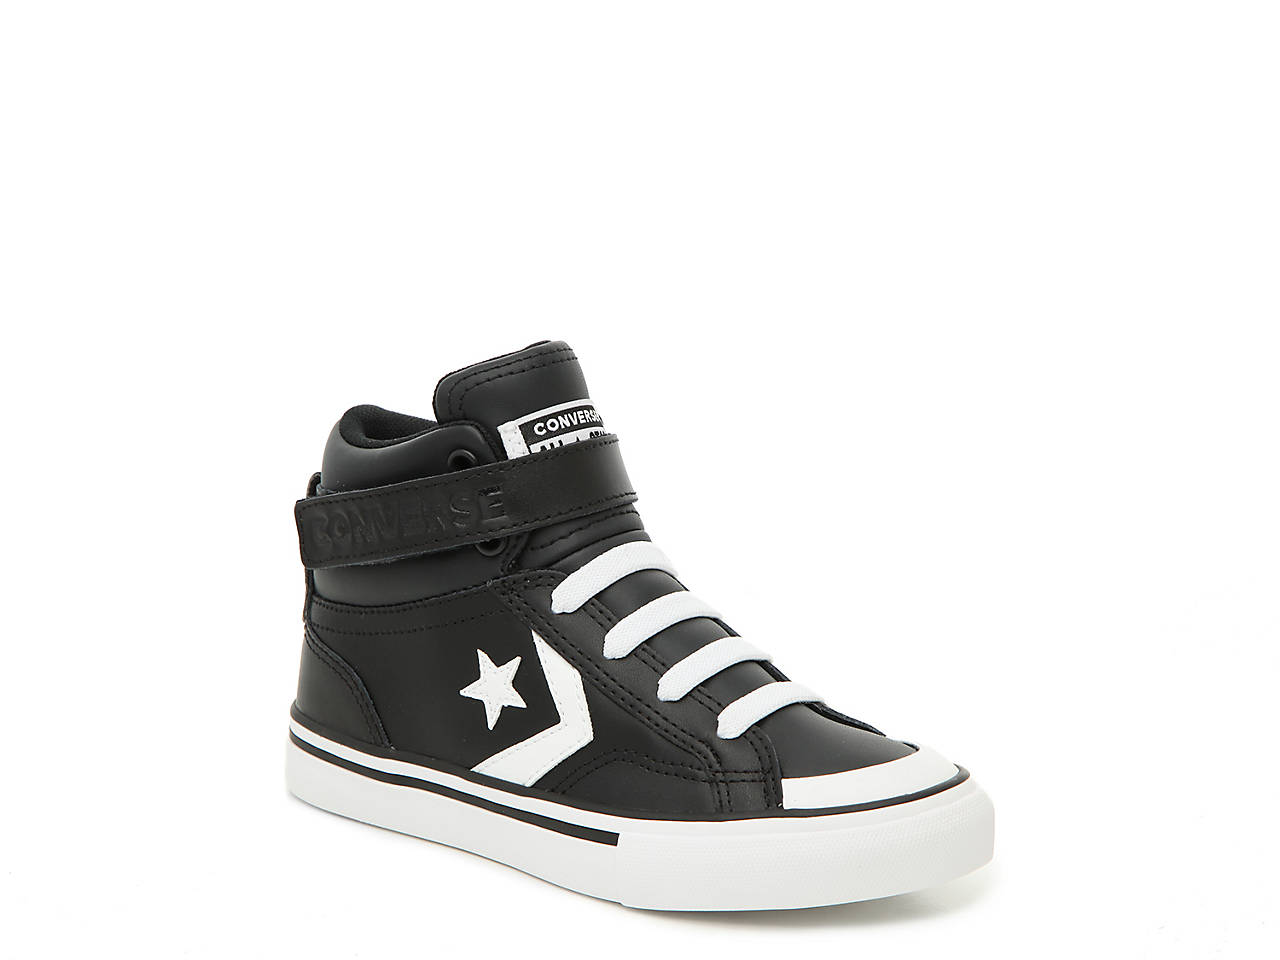 7a6fa7a15b140 Converse Pro Blaze Strap Toddler   Youth High-Top Sneaker Kids Shoes ...